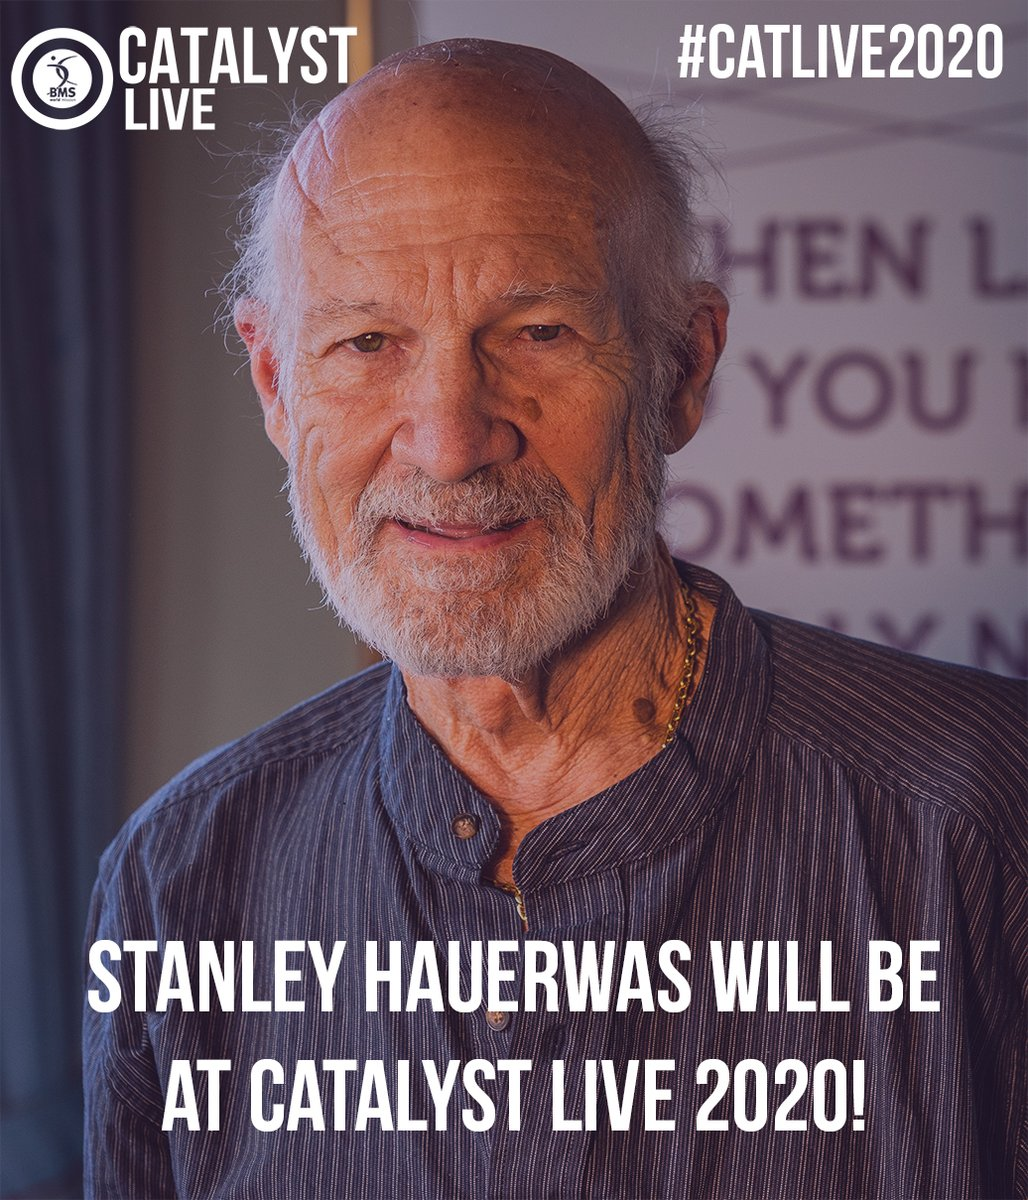 test Twitter Media - ✨ Get excited about Catalyst Live!! ✨Can you believe we're holding our FIFTH Catalyst Live Event in October? Or that STANLEY HAUERWAS is going to be there??If you're as excited as we are, head to https://t.co/0tE3EuUamf to get your tickets today!#CatLive2020 #CatalystFIVE https://t.co/ATodJSoKXv